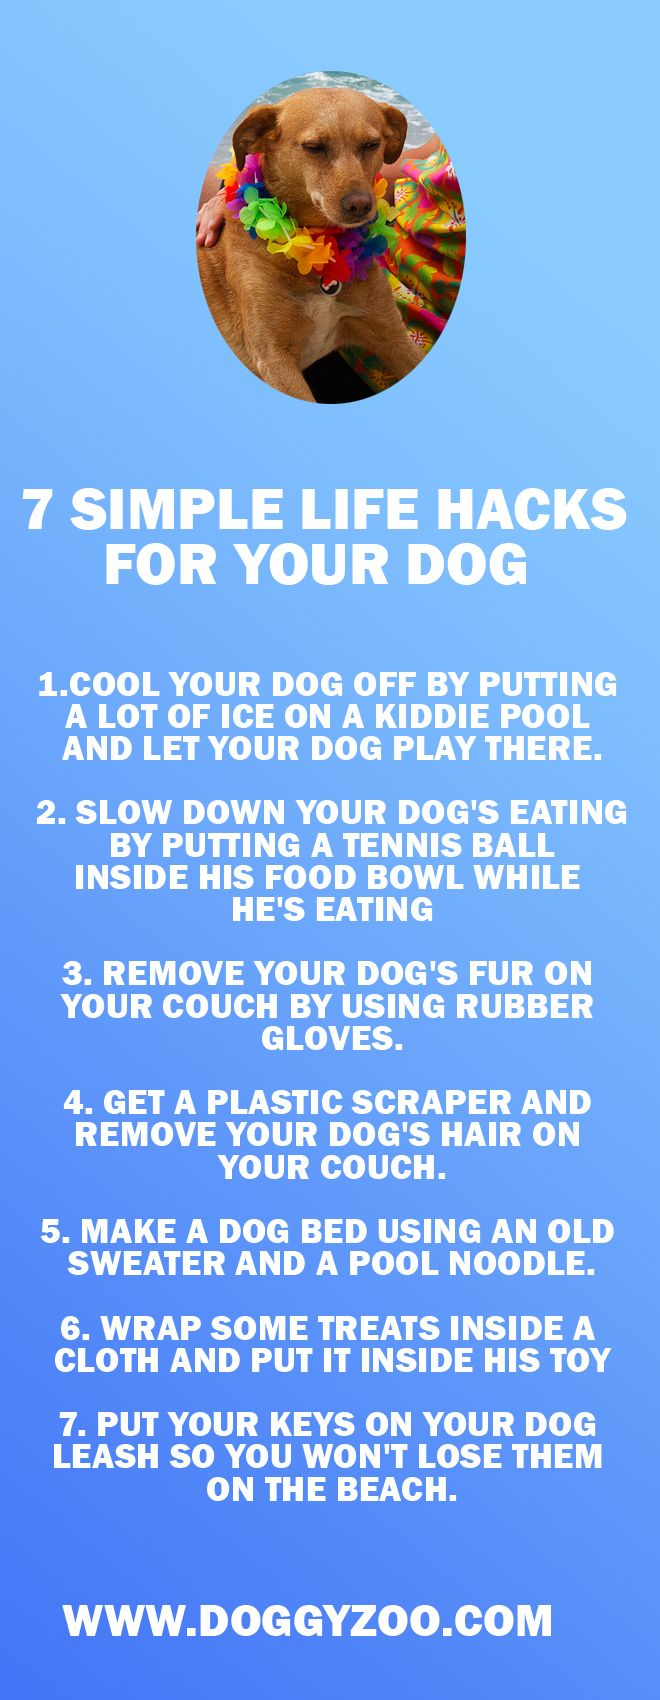 7 Simple Life Hacks for Your Dog